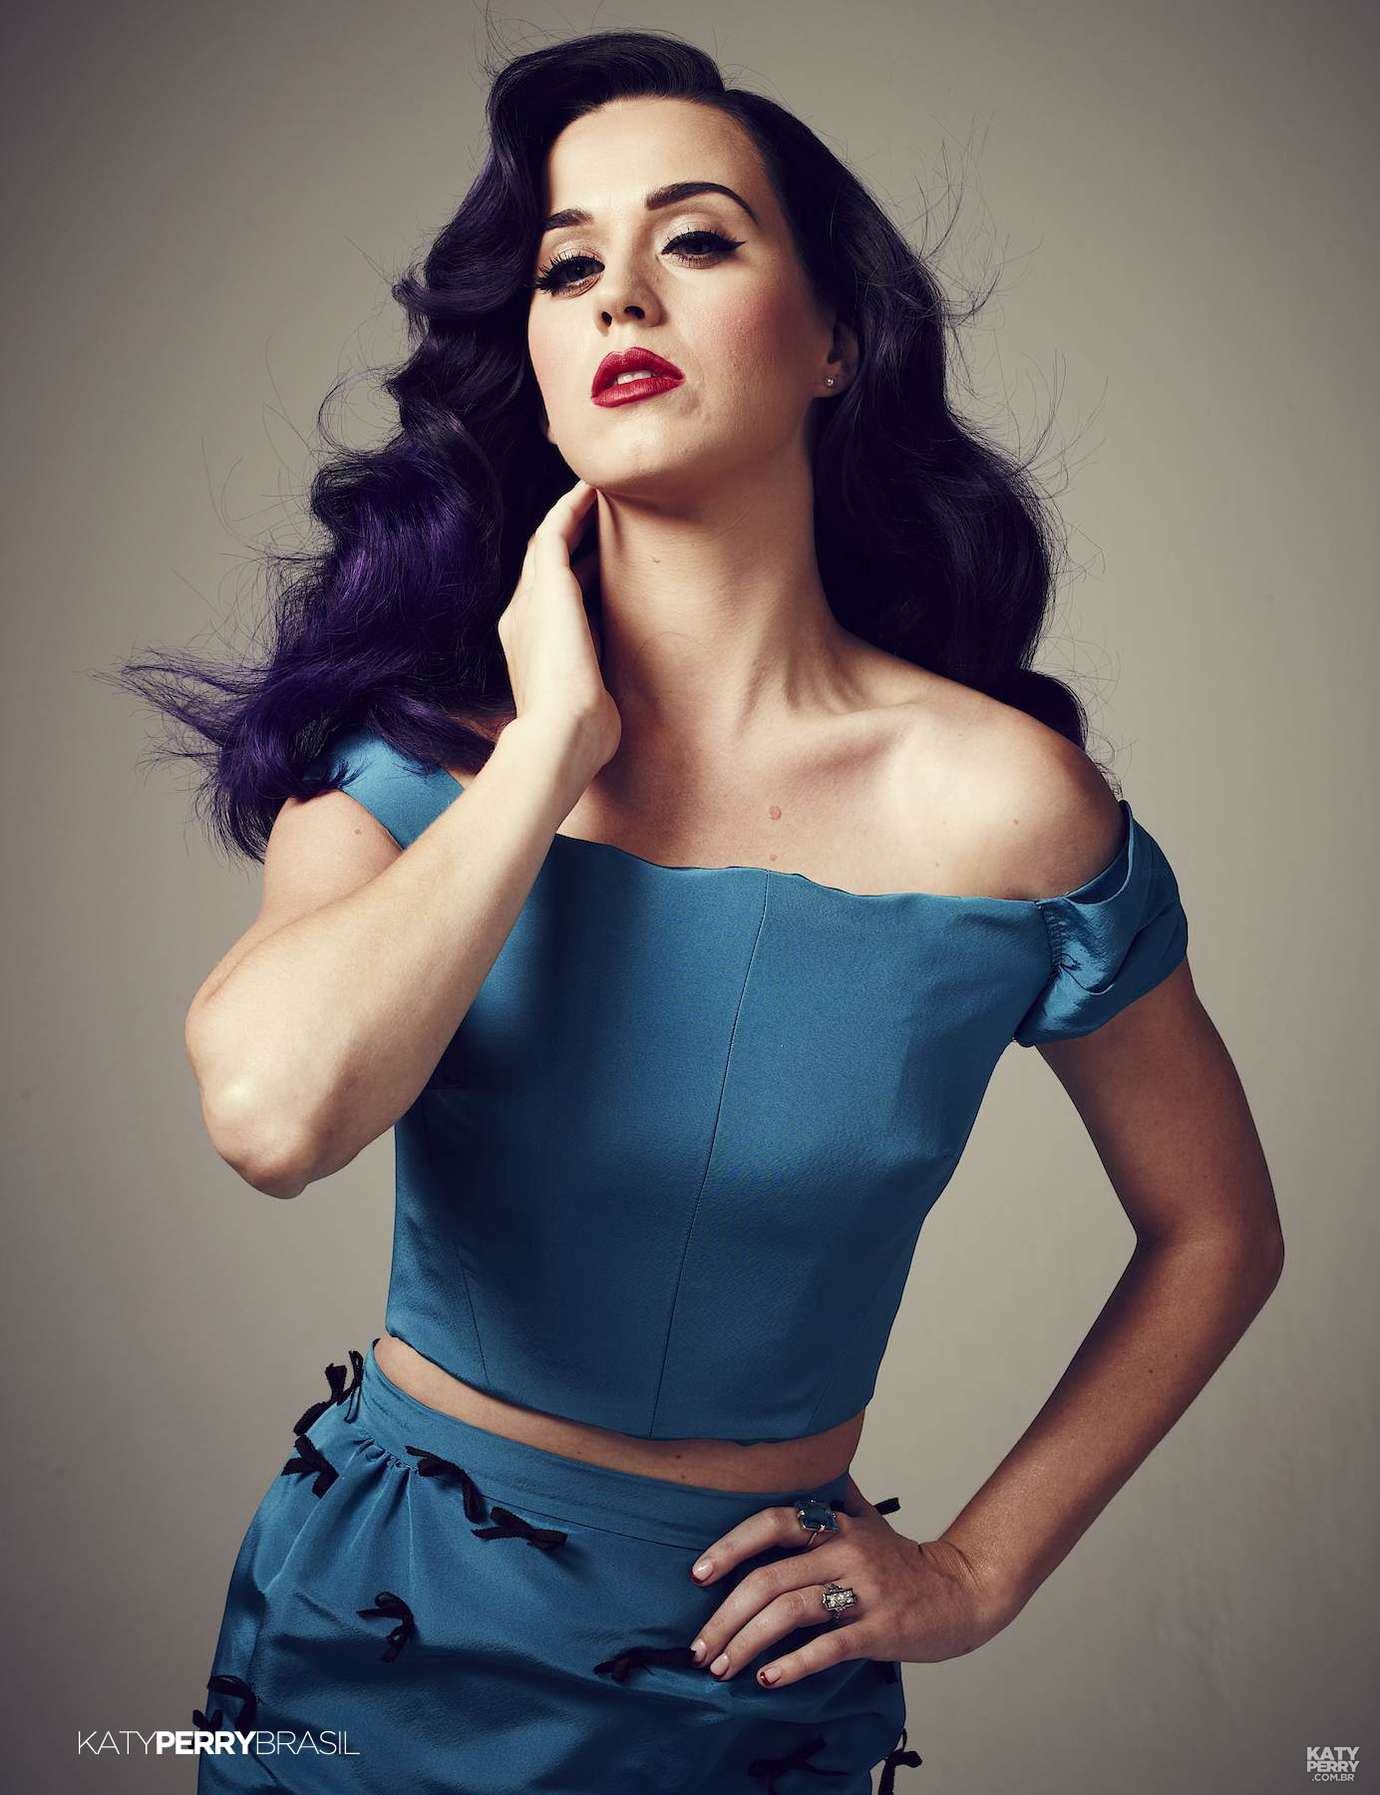 Katy perry photoshoot